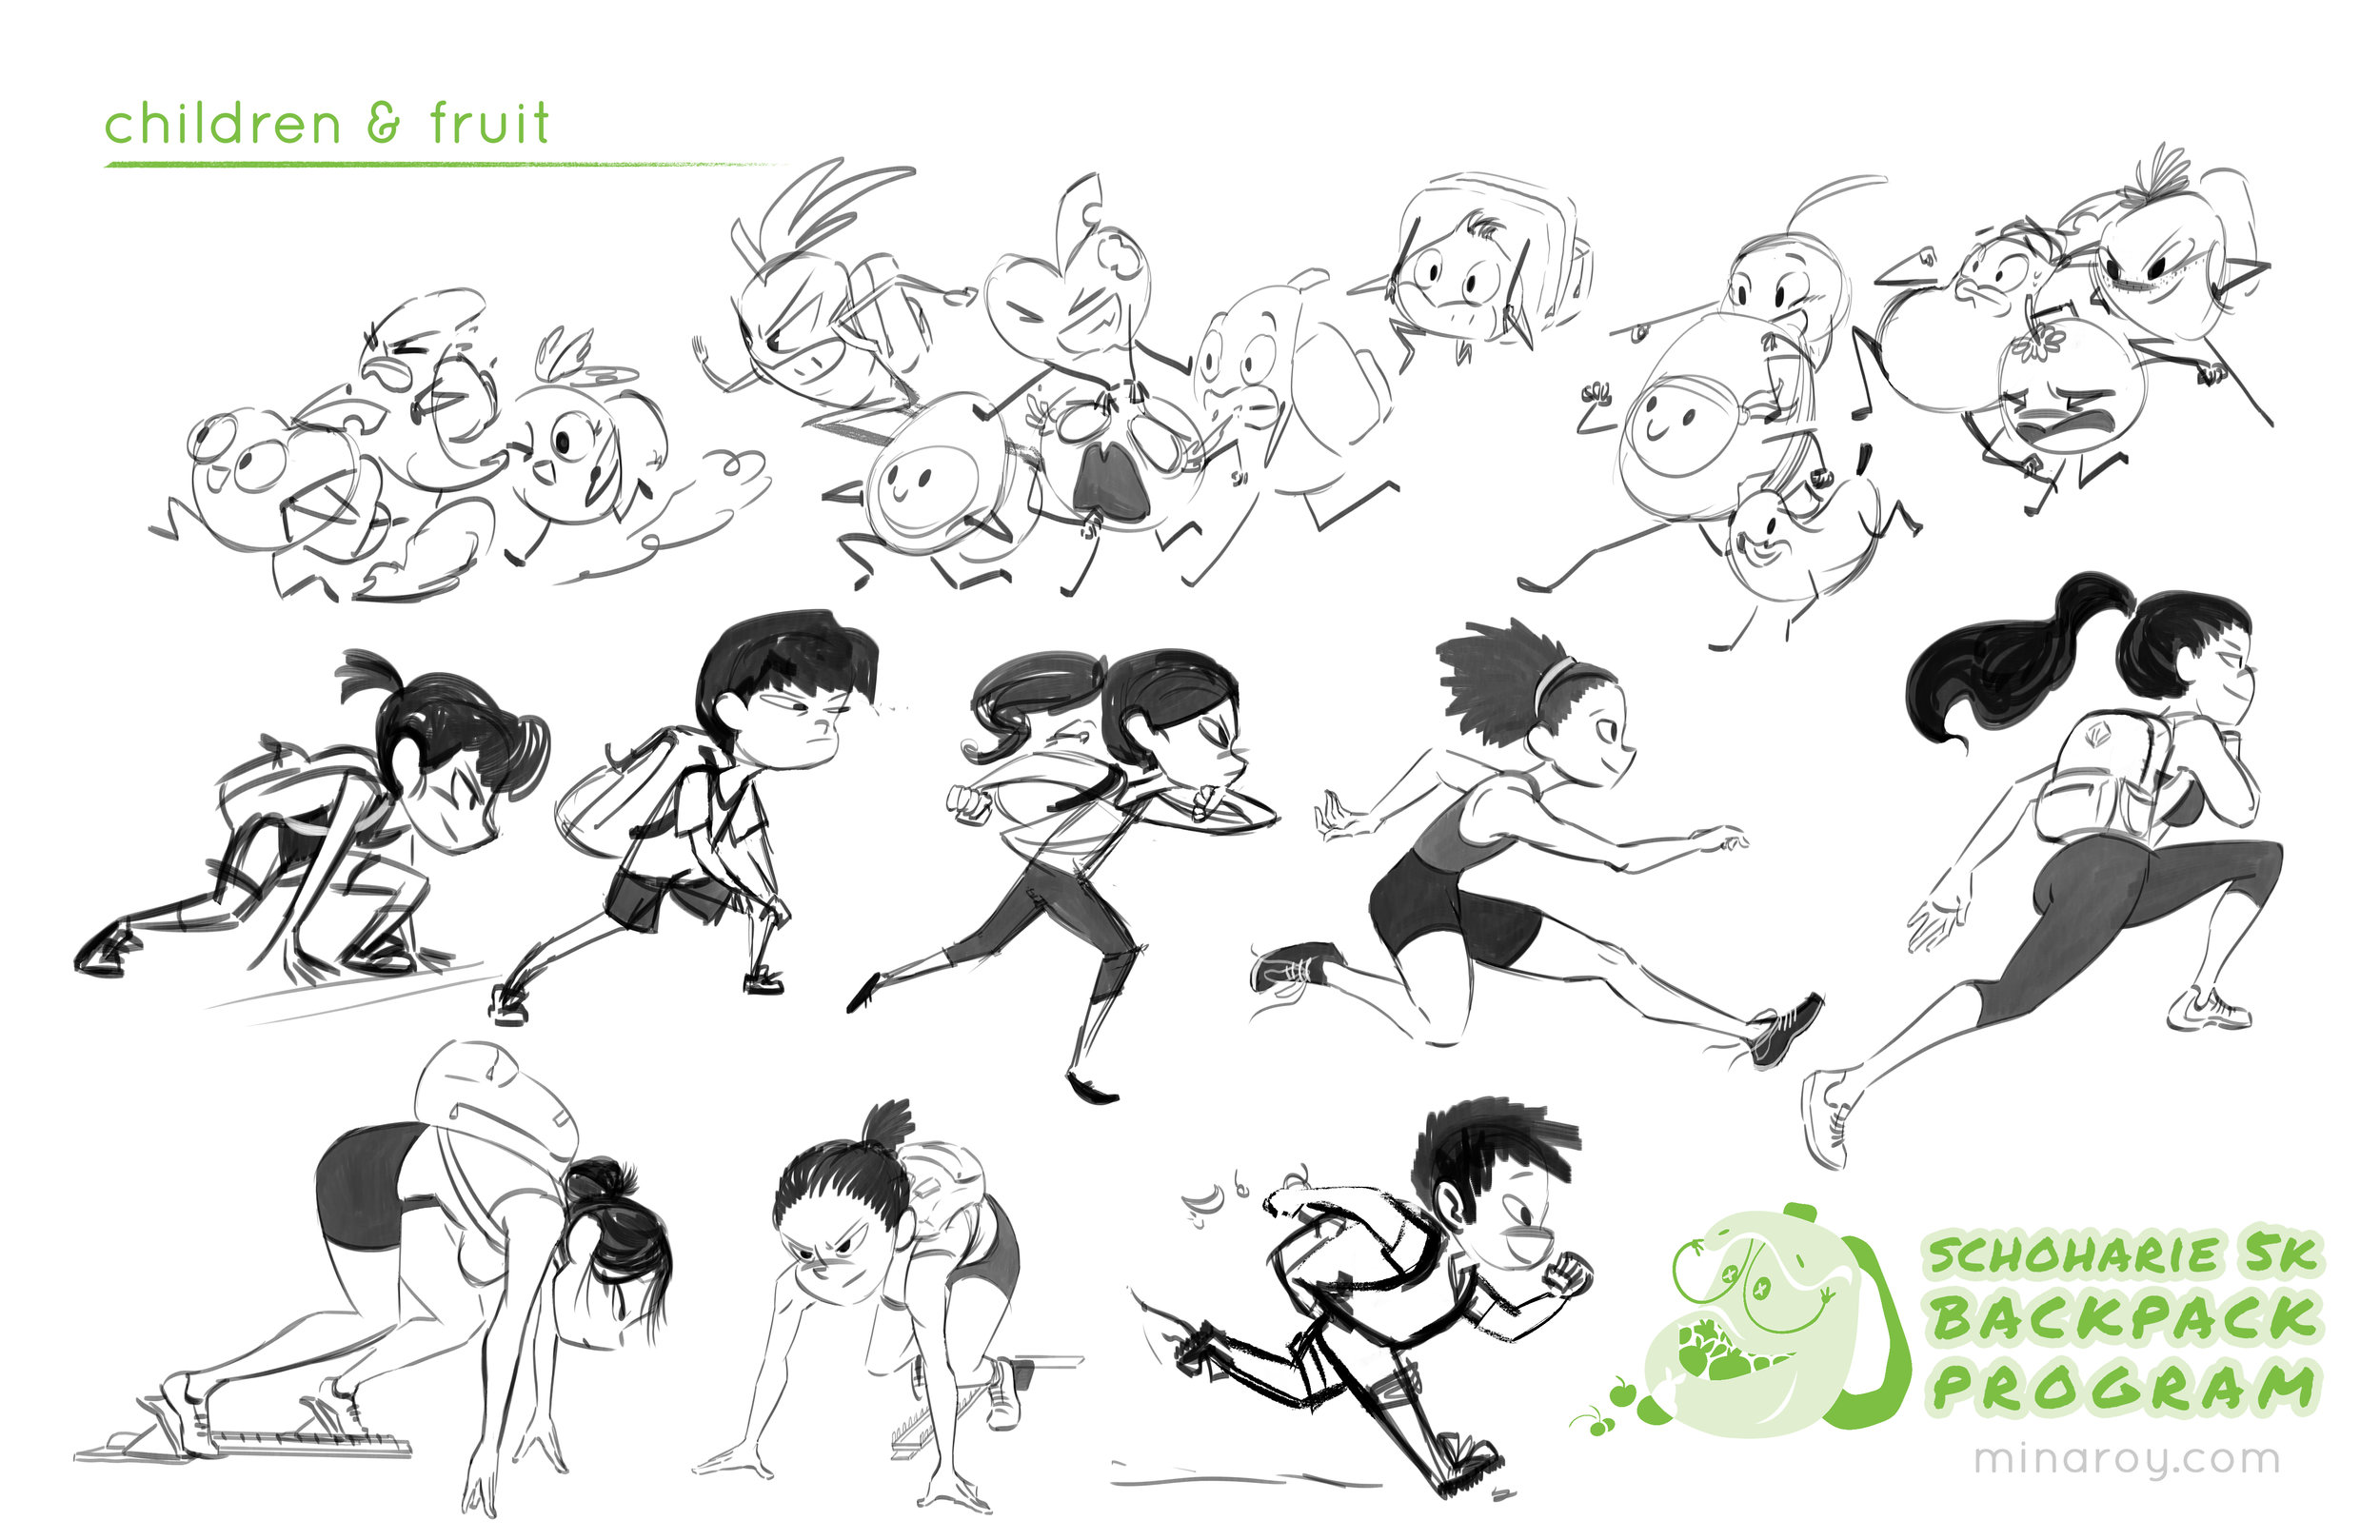 Children_Fruit_Design.jpg